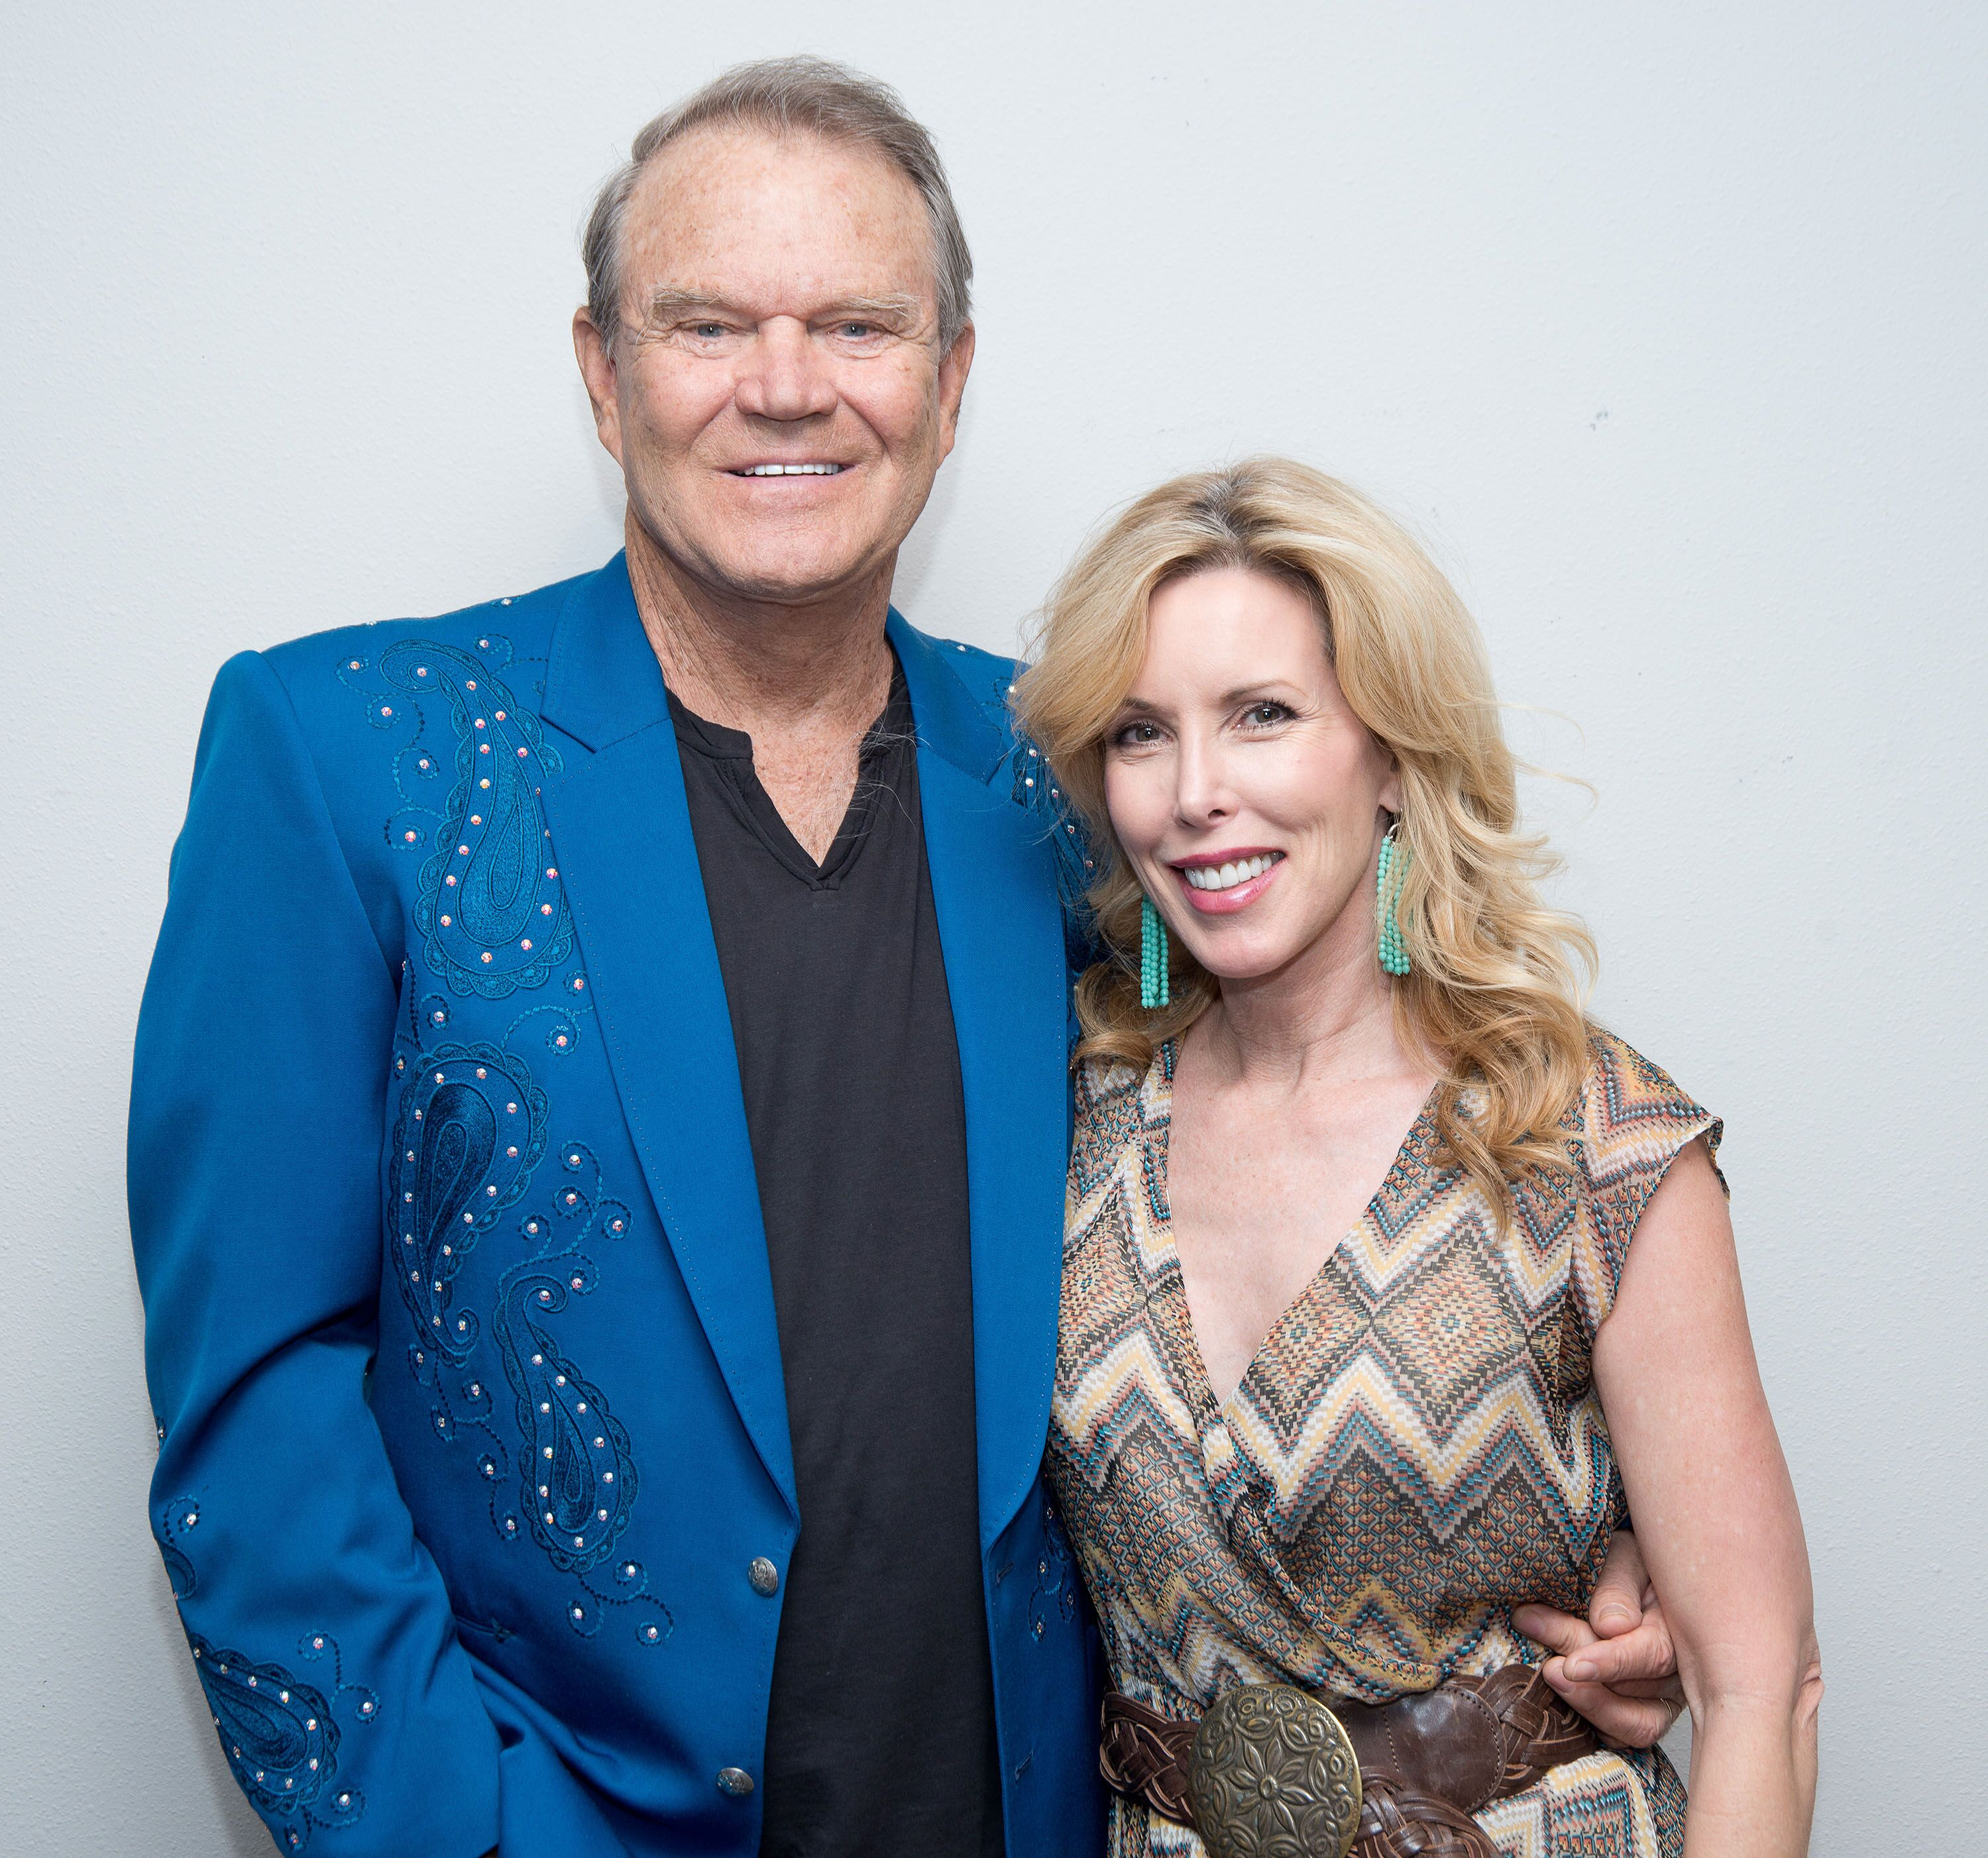 Glen Campbell poses backstage with his wife Kim following his Goodbye Tour performance at Route 66 Casino's Legends Theater on July 29, 2012 | Photo: Getty Images